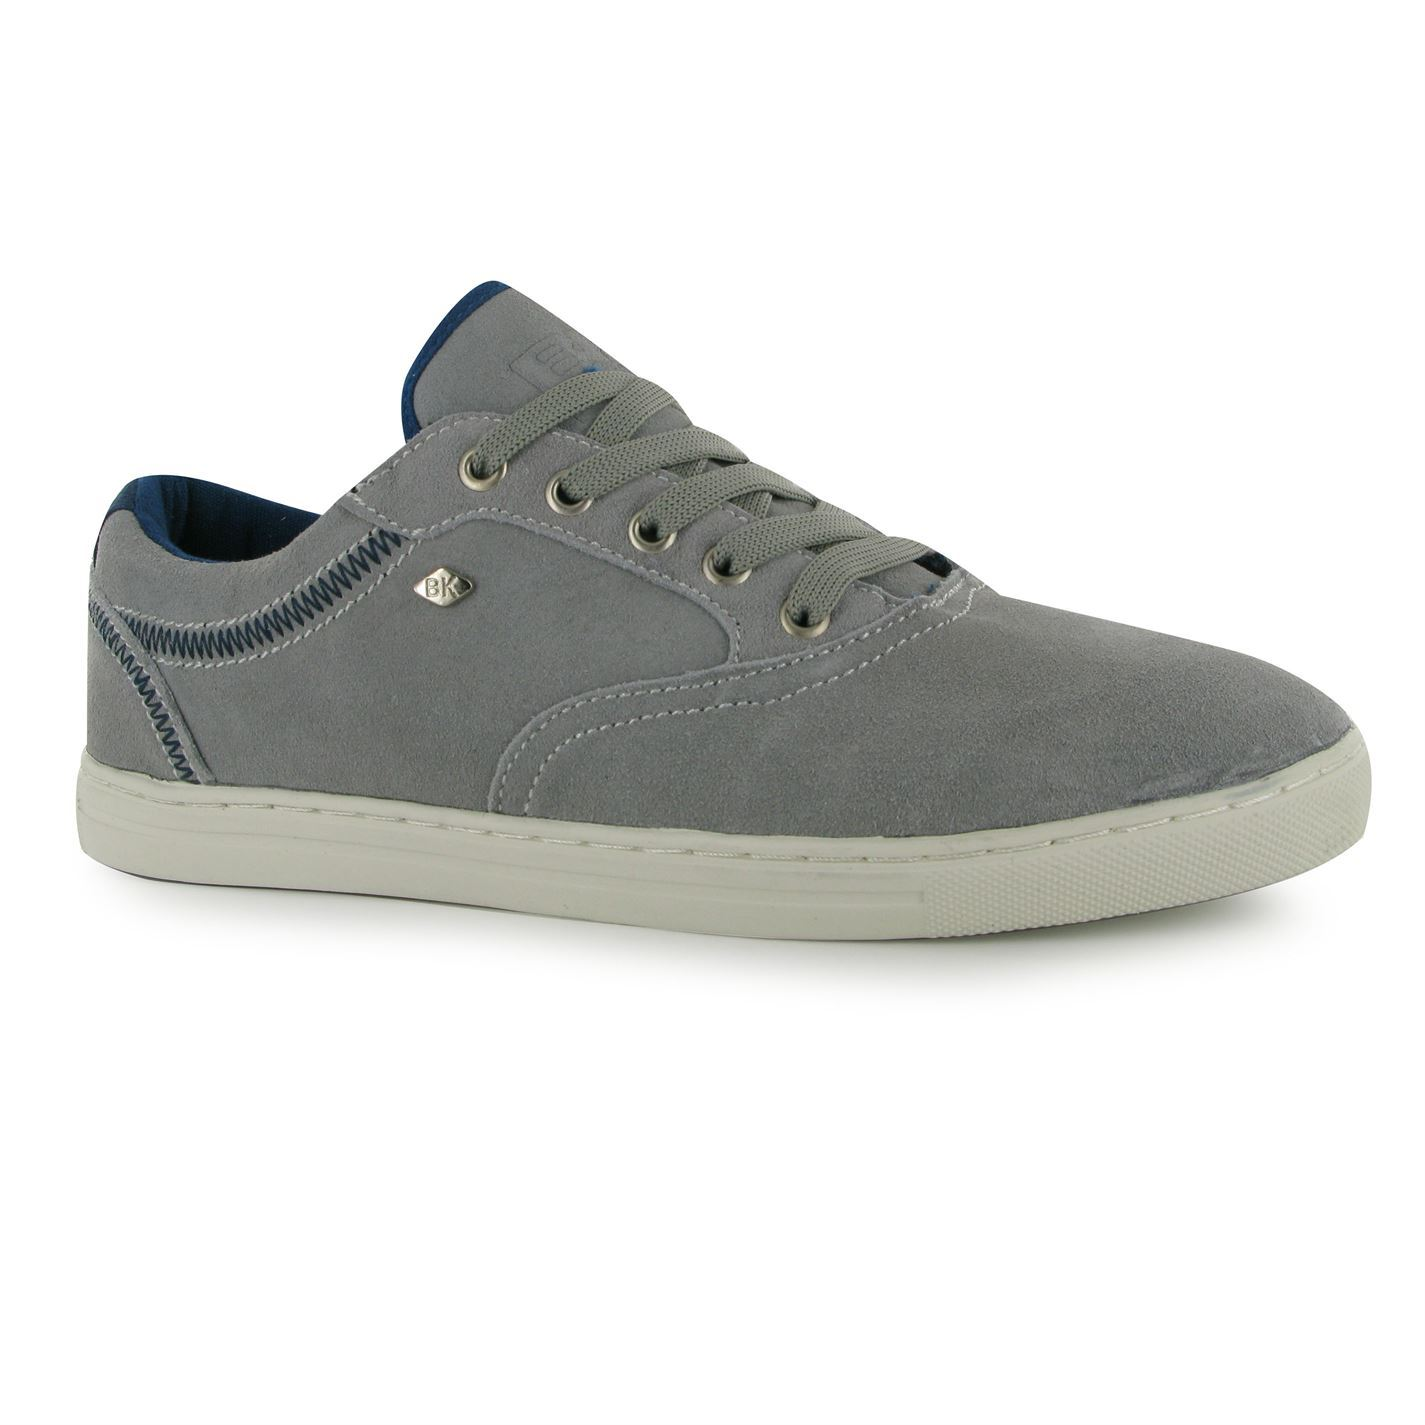 Skate shoes size 9 - British Knights Mens Ys Skate Shoes Lace Up Canvas Casual Footwear